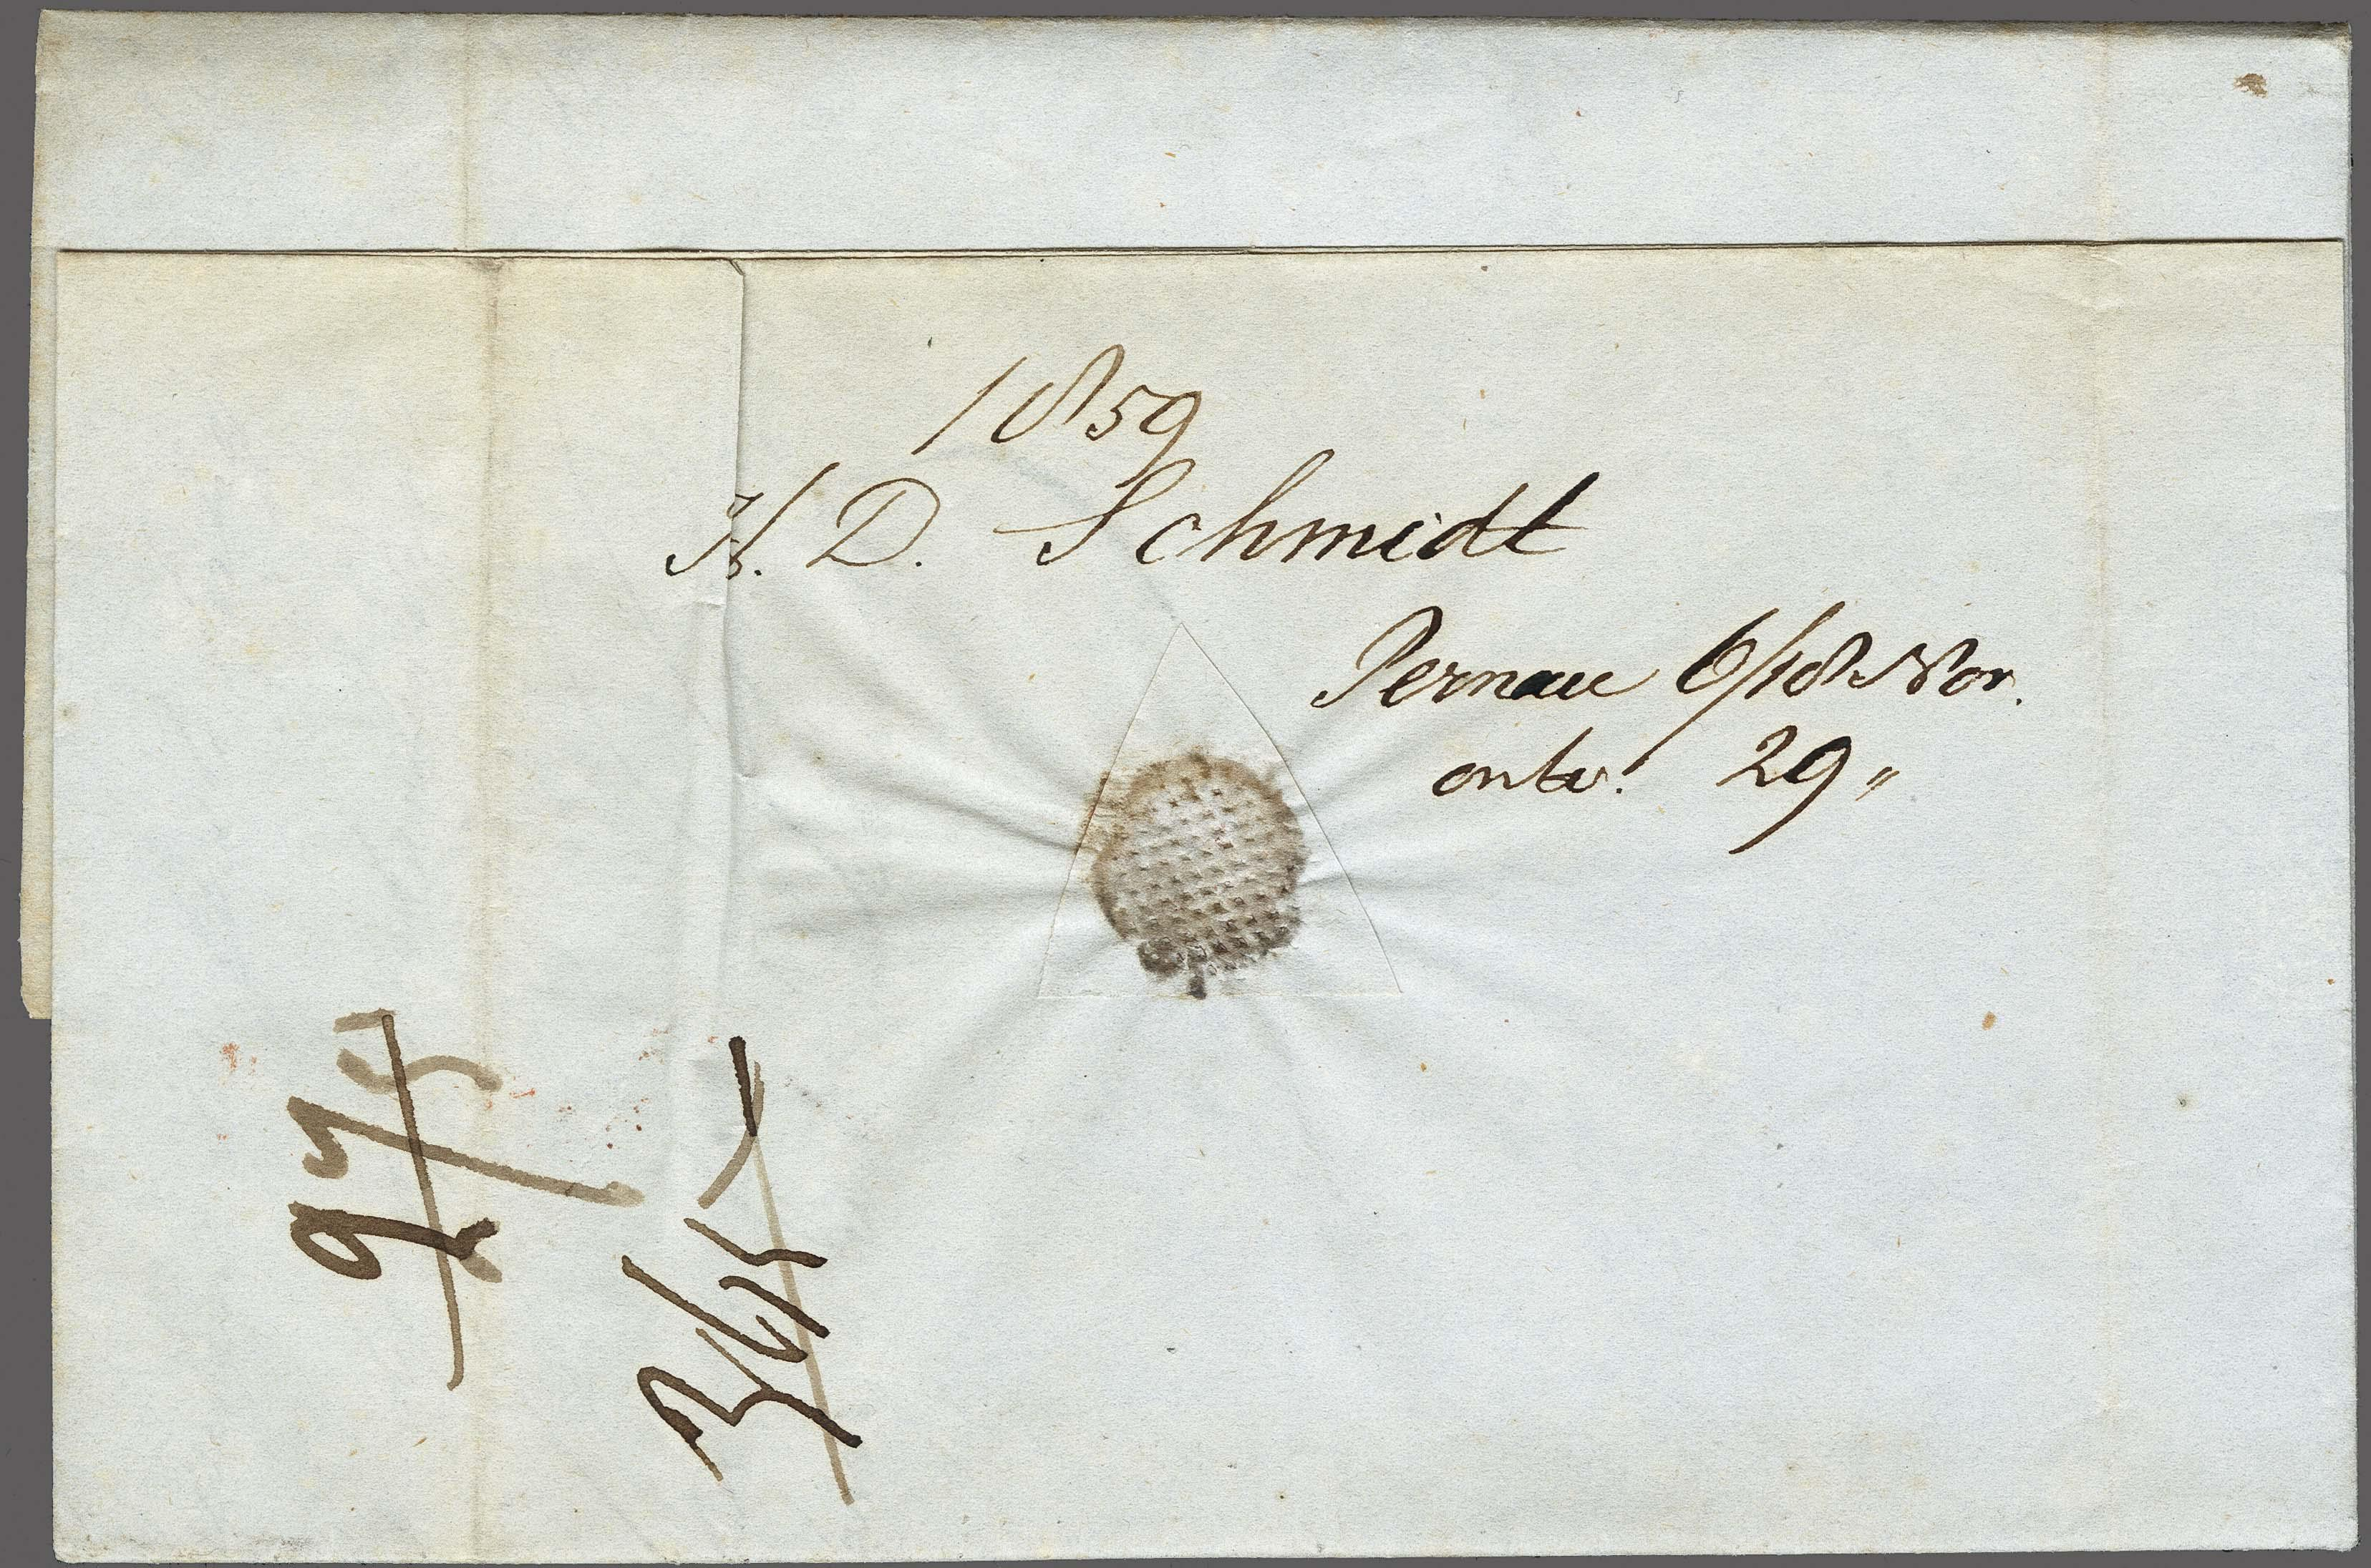 Lot 2443 - Netherlands and former colonies Netherlands -  Corinphila Veilingen Auction 250-253 - Day 3 - Netherlands and former colonies - Single lots & Picture postcards